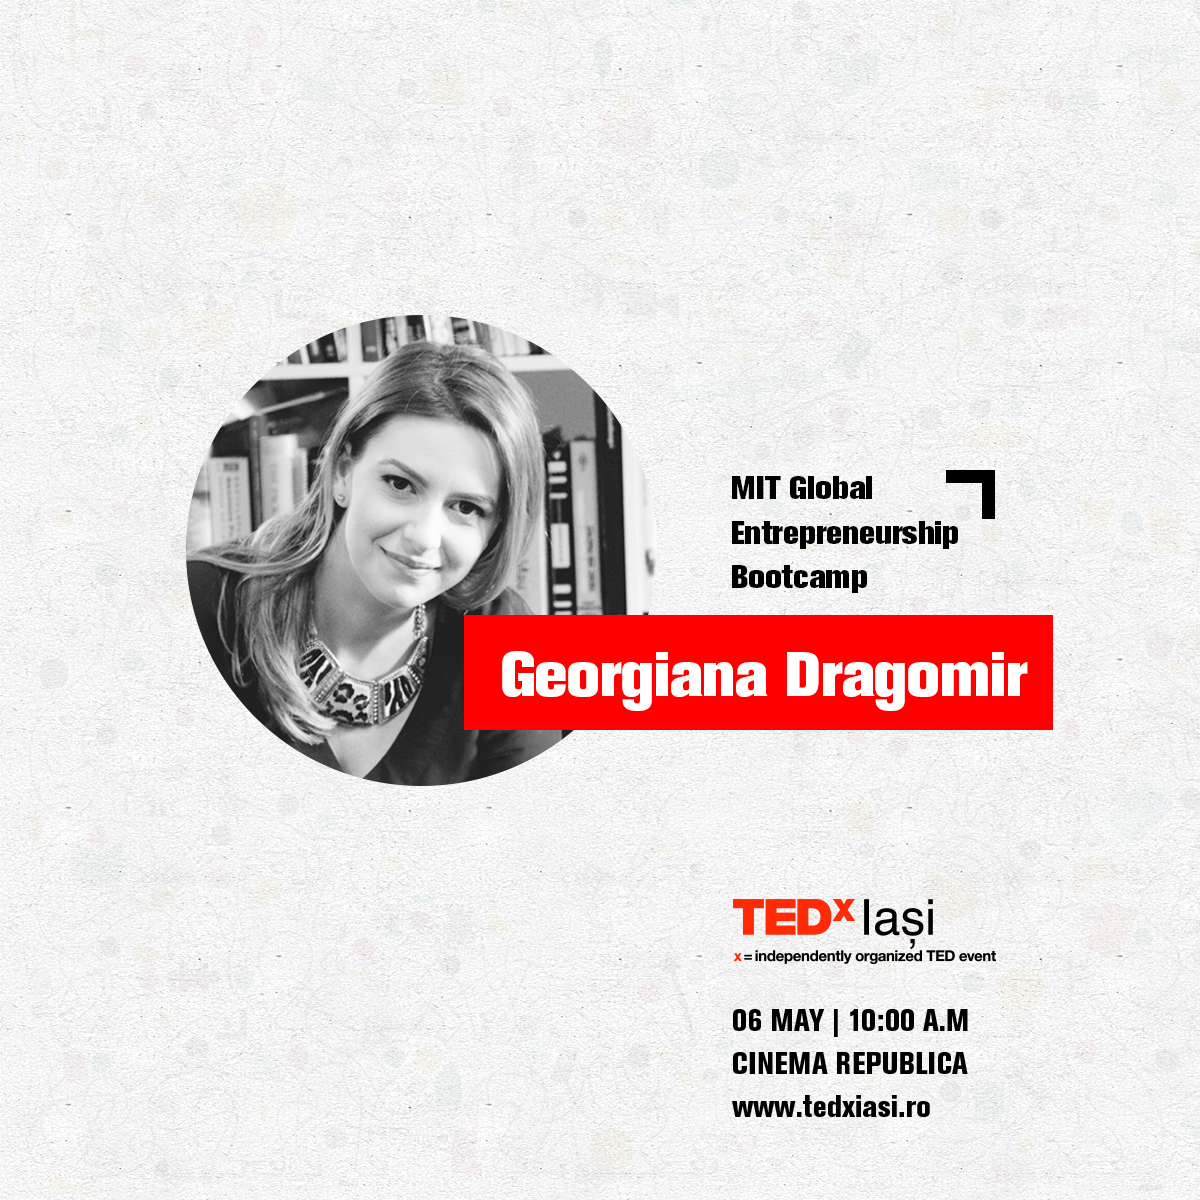 georgiana-dragomir